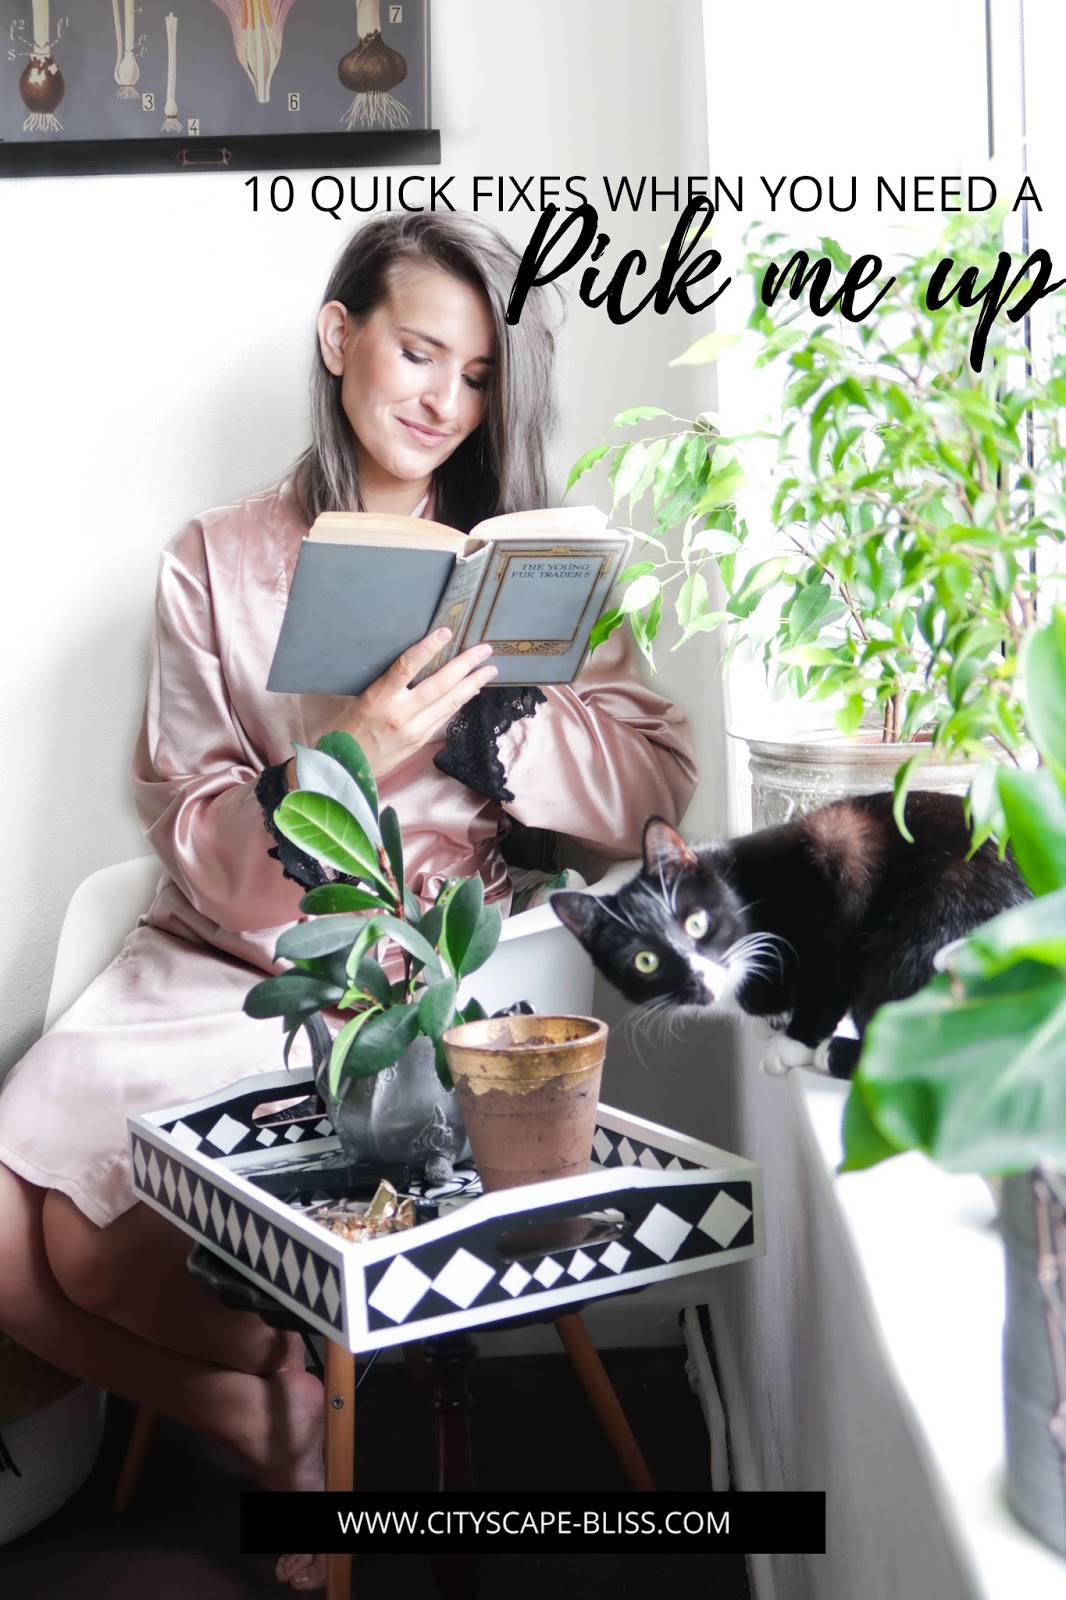 10 quick fixes when you need a pick me up